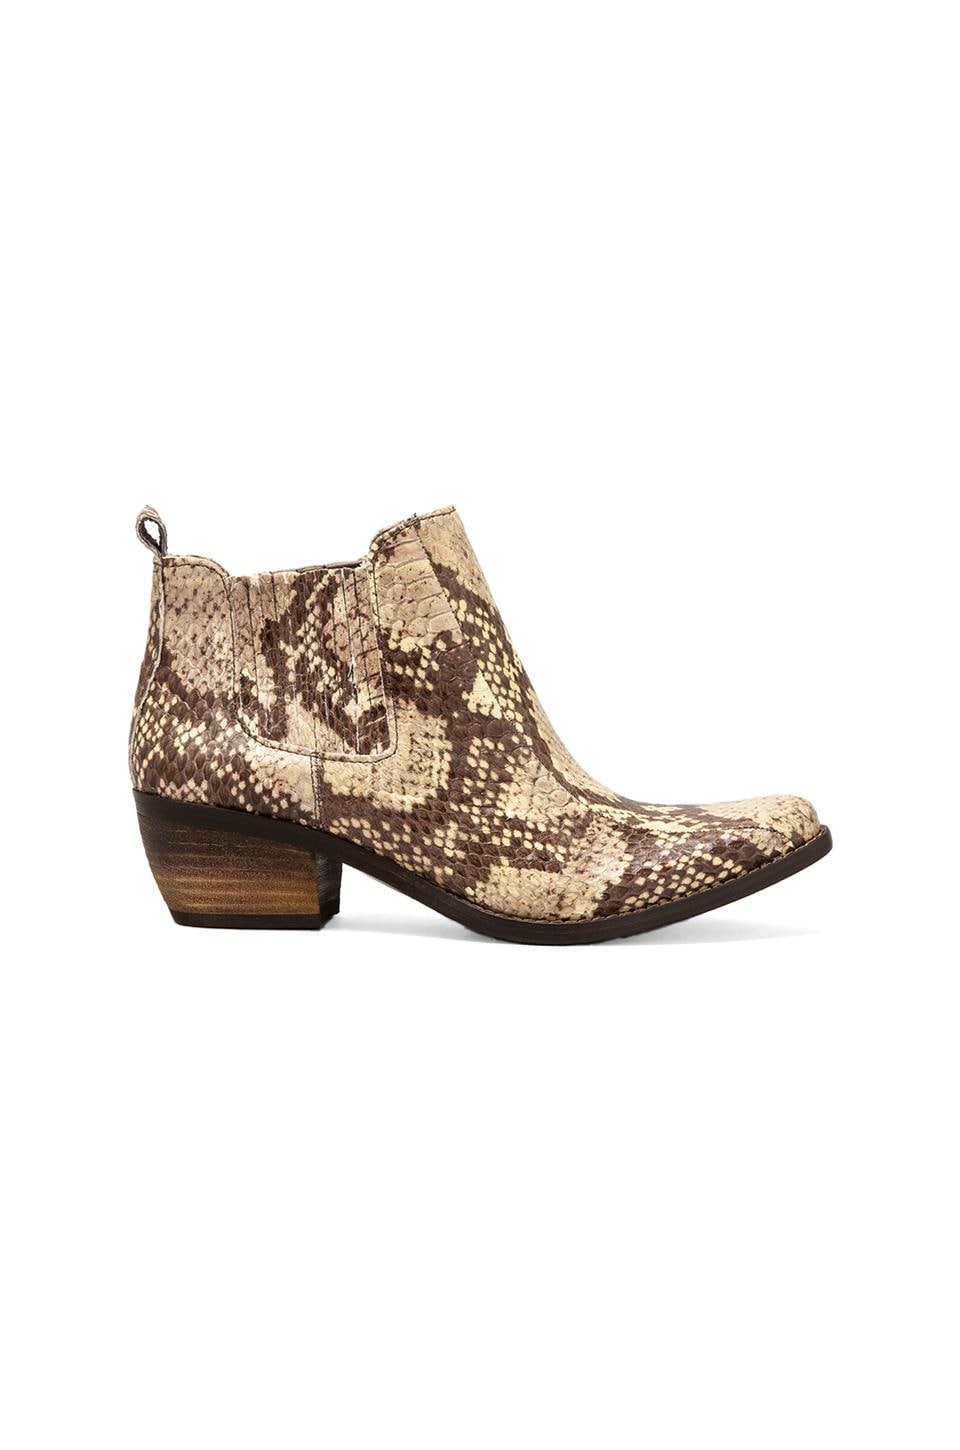 Vince Camuto Corral Bootie in Neutral Snake